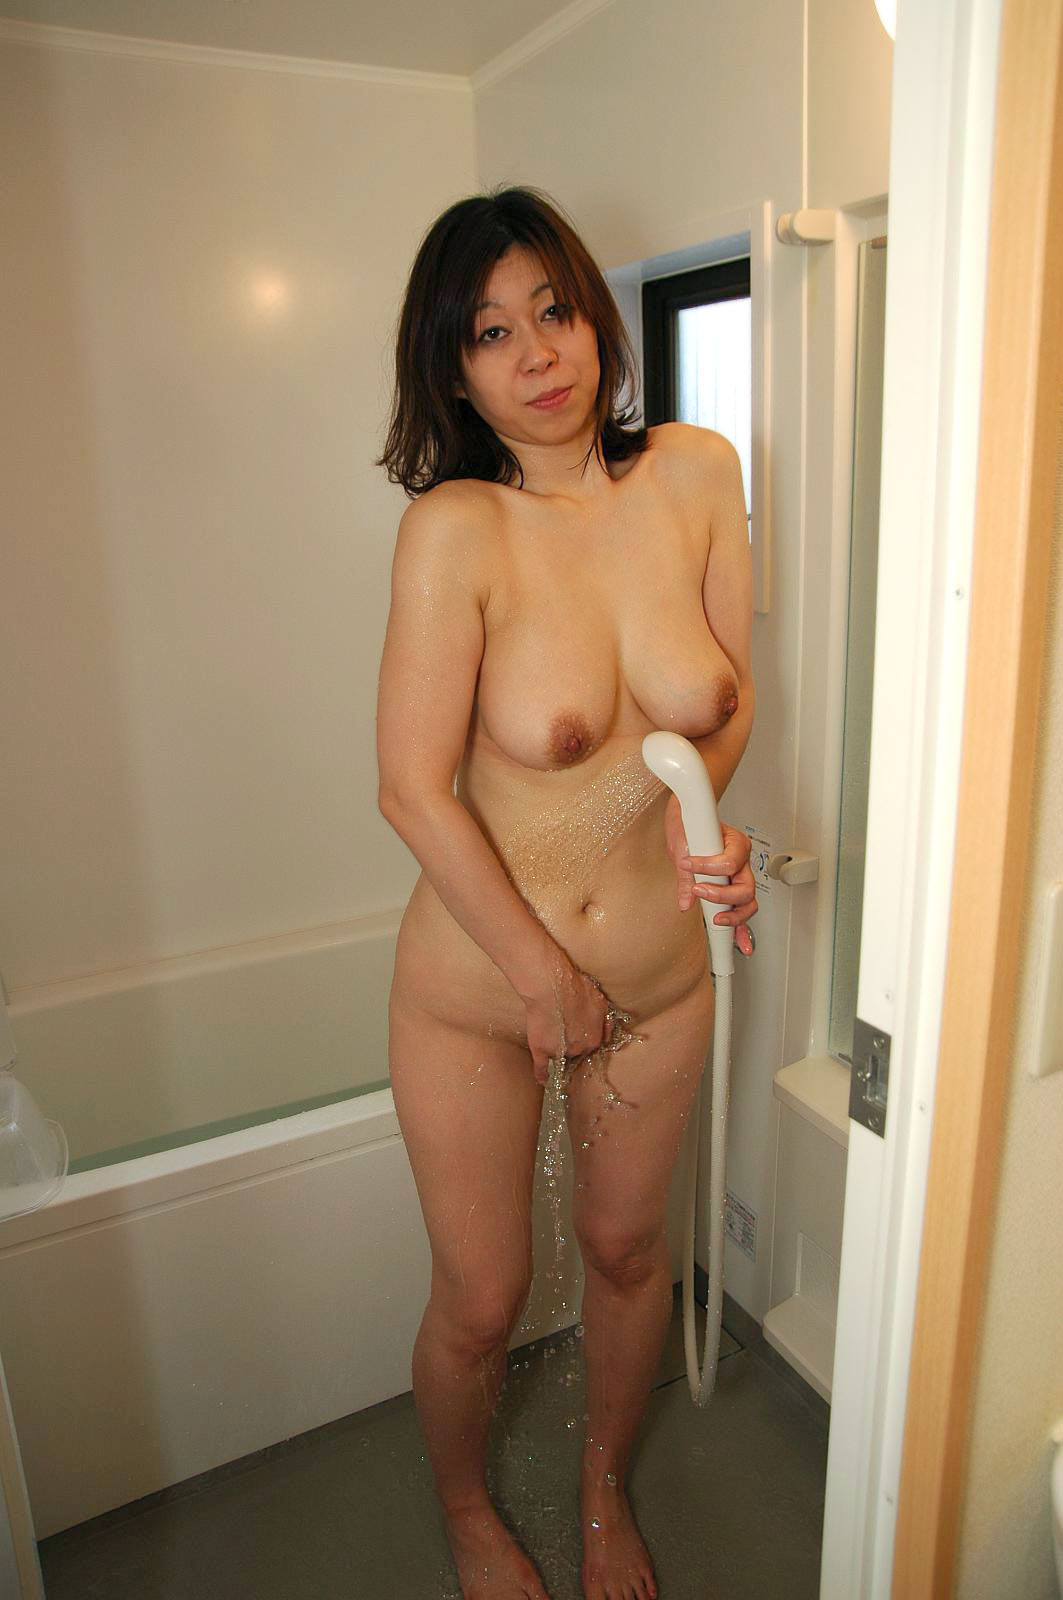 japan-mom-shower-naked-picture-nude-midget-girls-spread-open